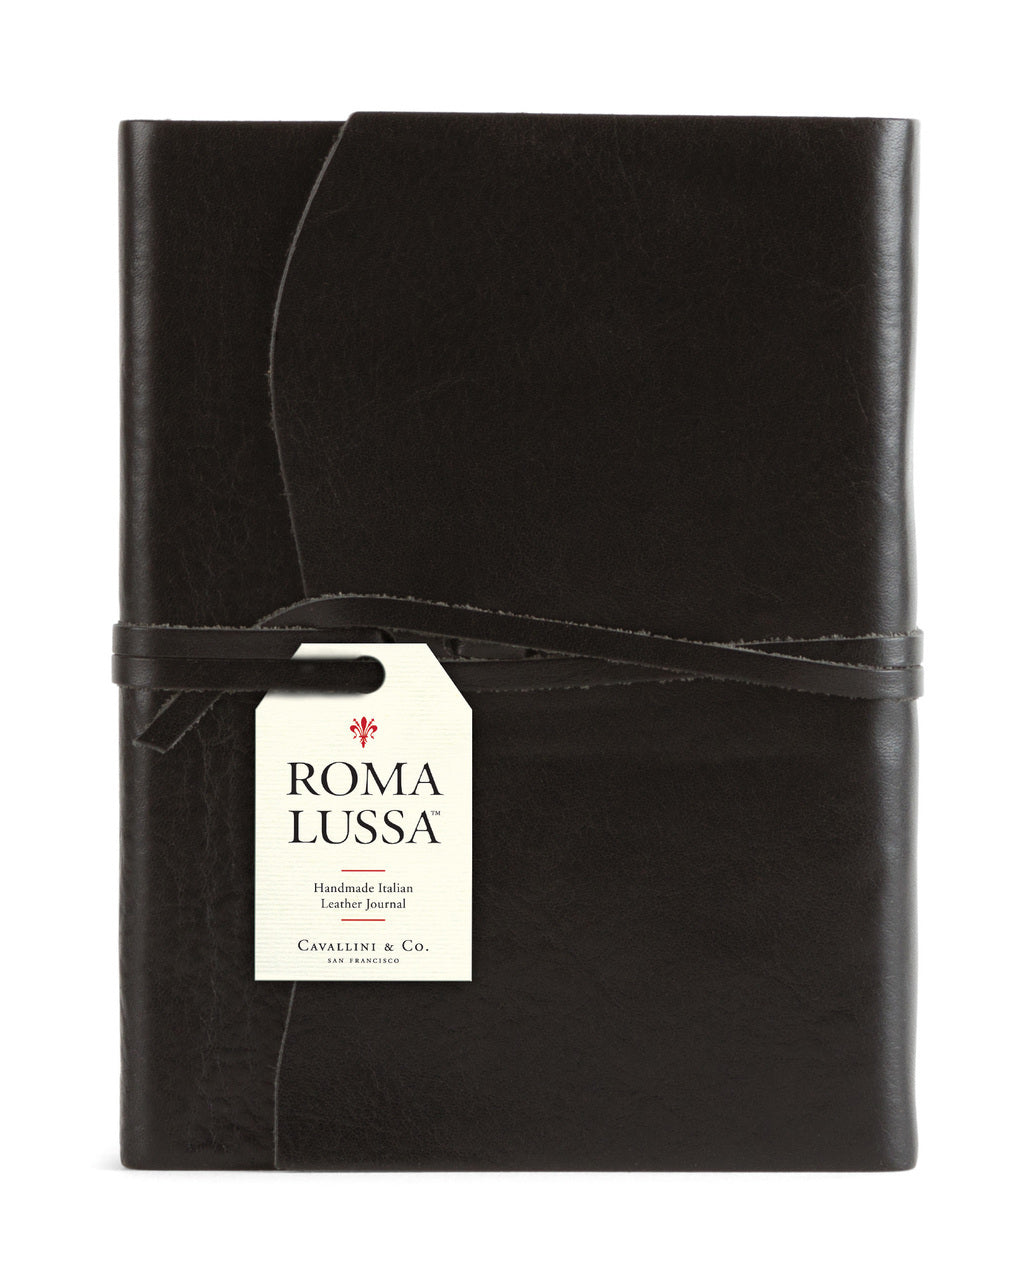 Cavallini & Co. Roma Lussa Leather Journal- 5X7 inches